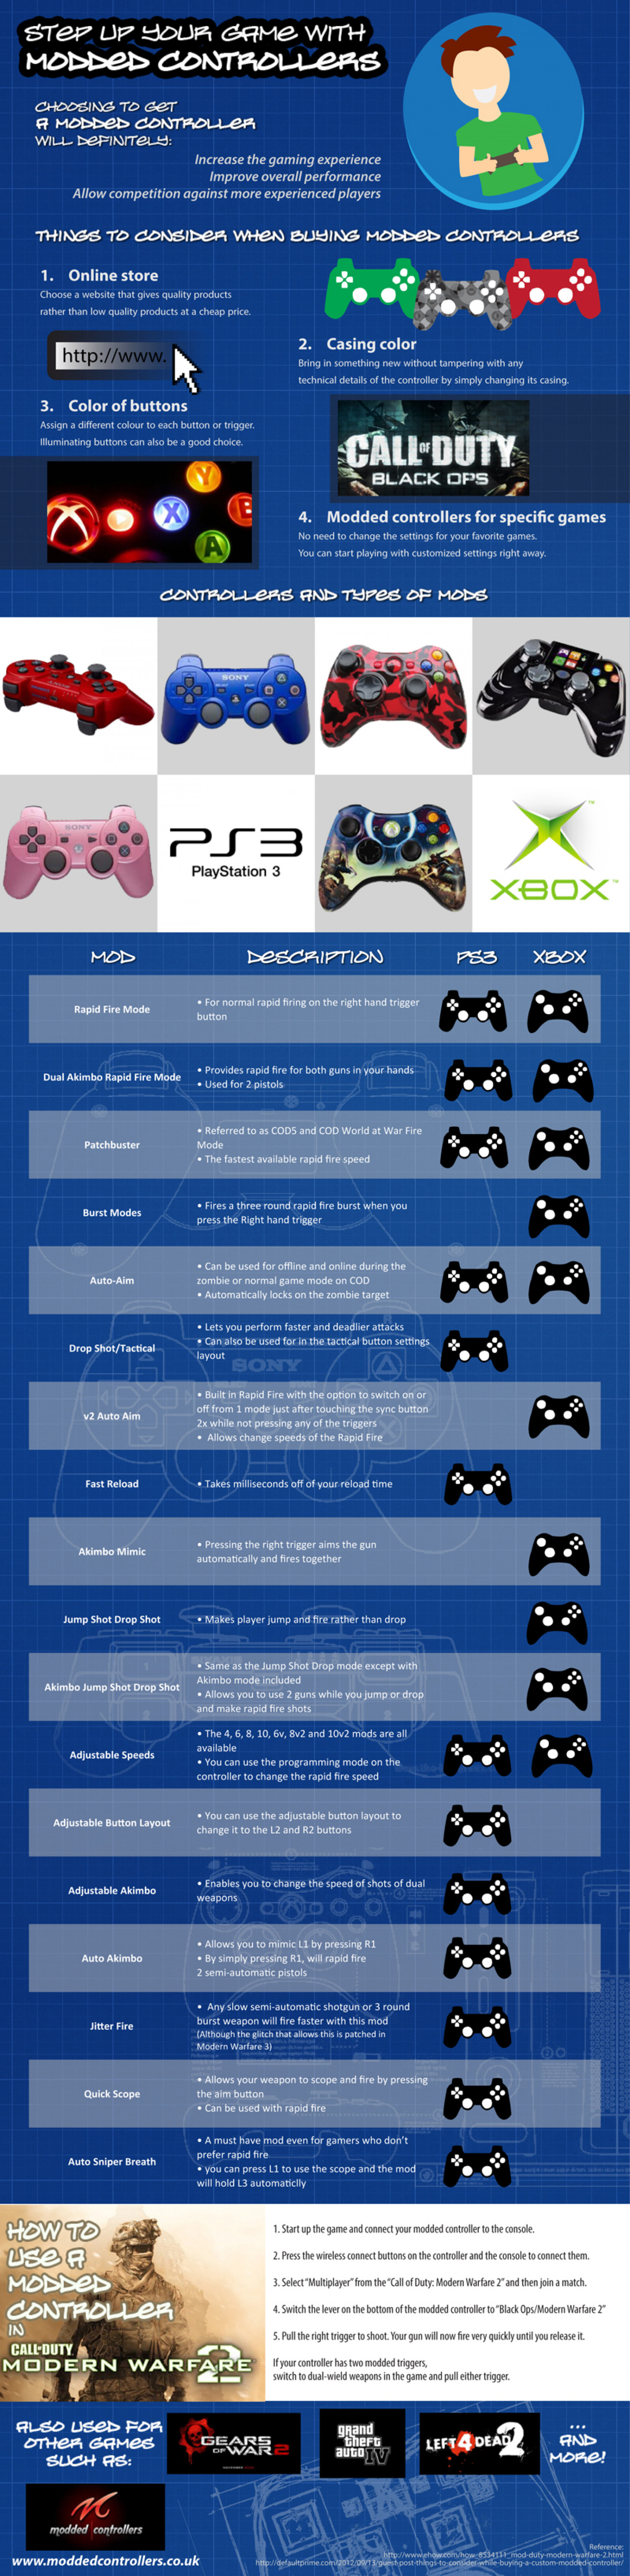 Step Up Your Game With Modded Controllers Infographic